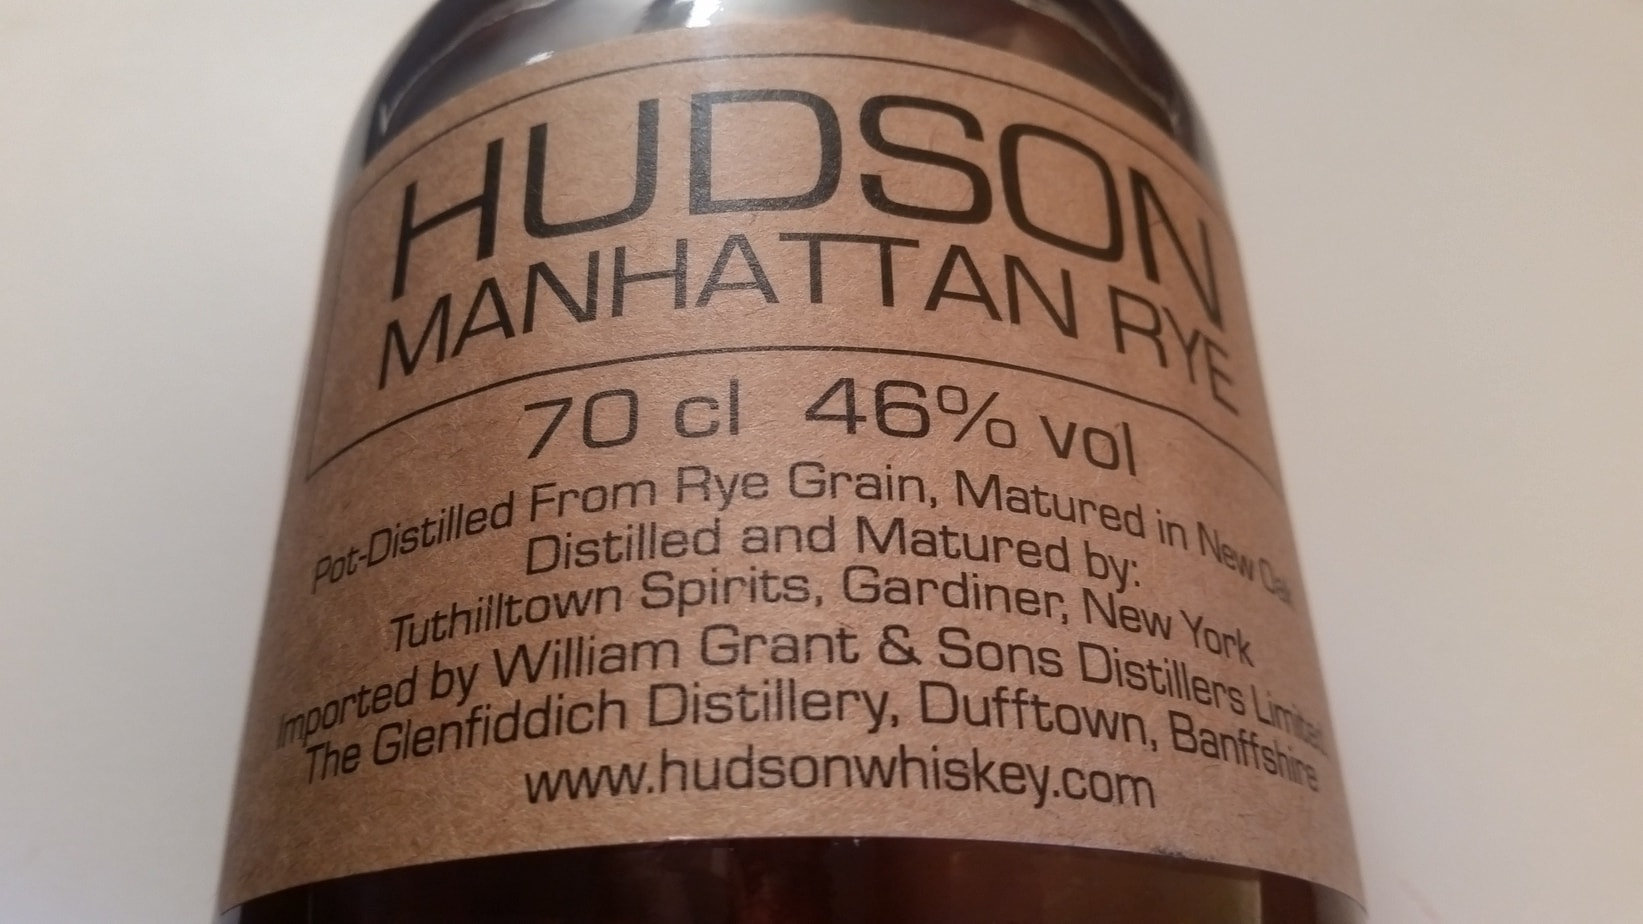 A close up of the Hudson Manhattan Rye label